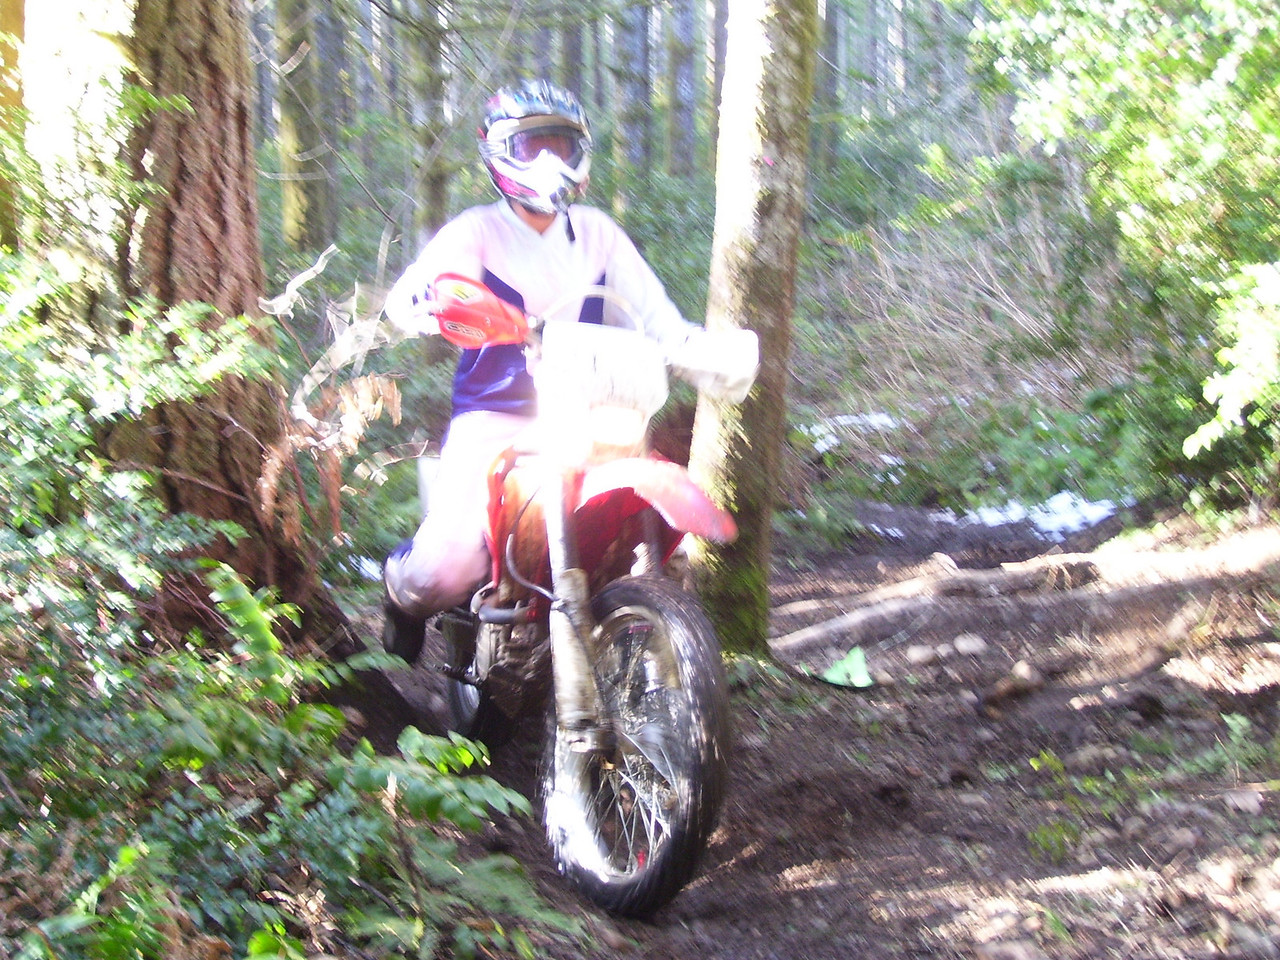 Julie is an excellent rider. This shot is on the 1.9 mile trail going over a large series of exposed roots